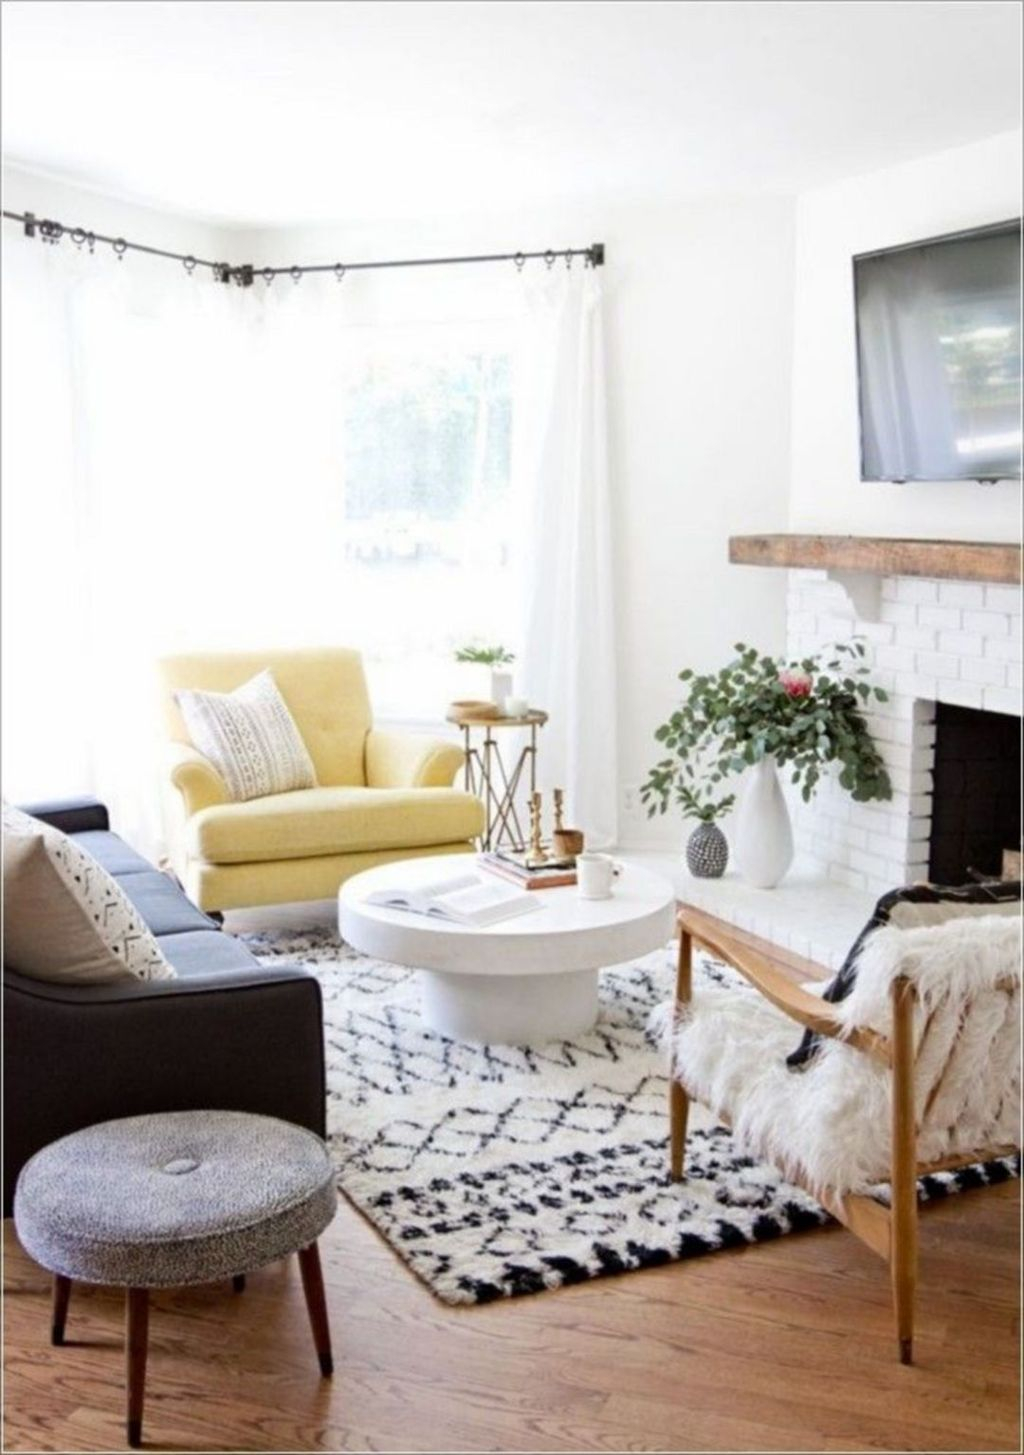 Best Tiny Living Room Design Ideas That Trend Nowaday 28